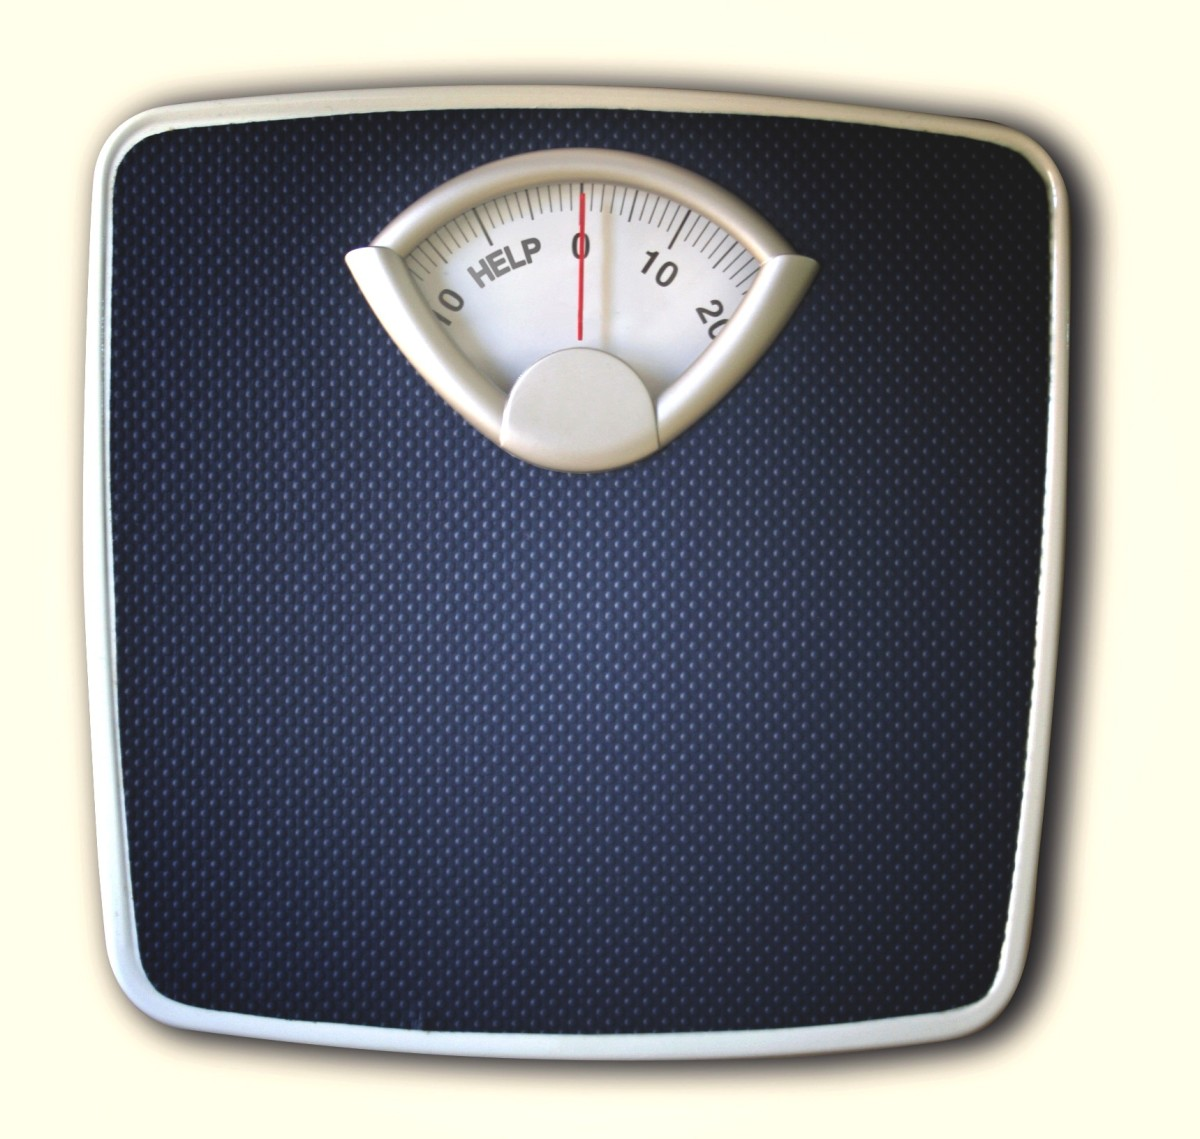 Knowing your body fat percentage can provide you with a better measure of health than just weight alone.